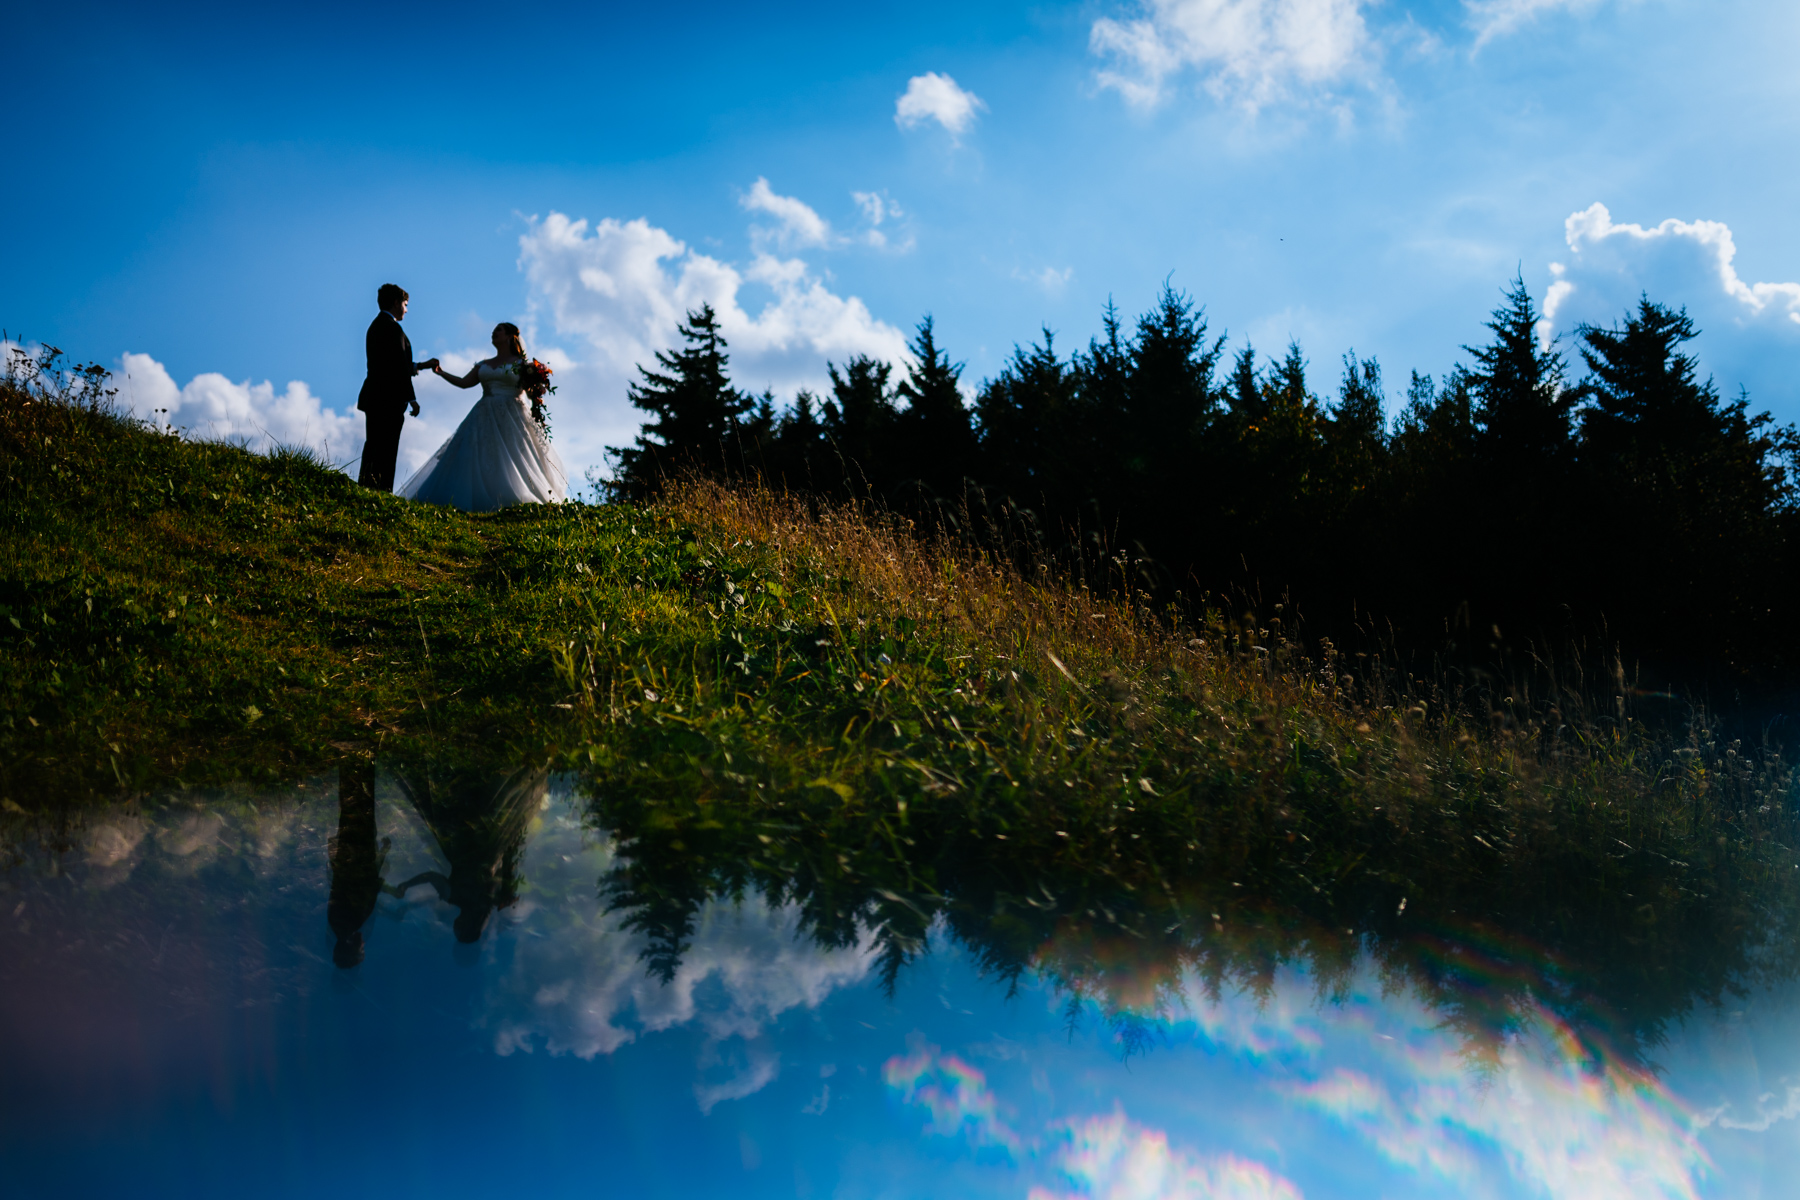 silhouette reflection creative wedding portrait